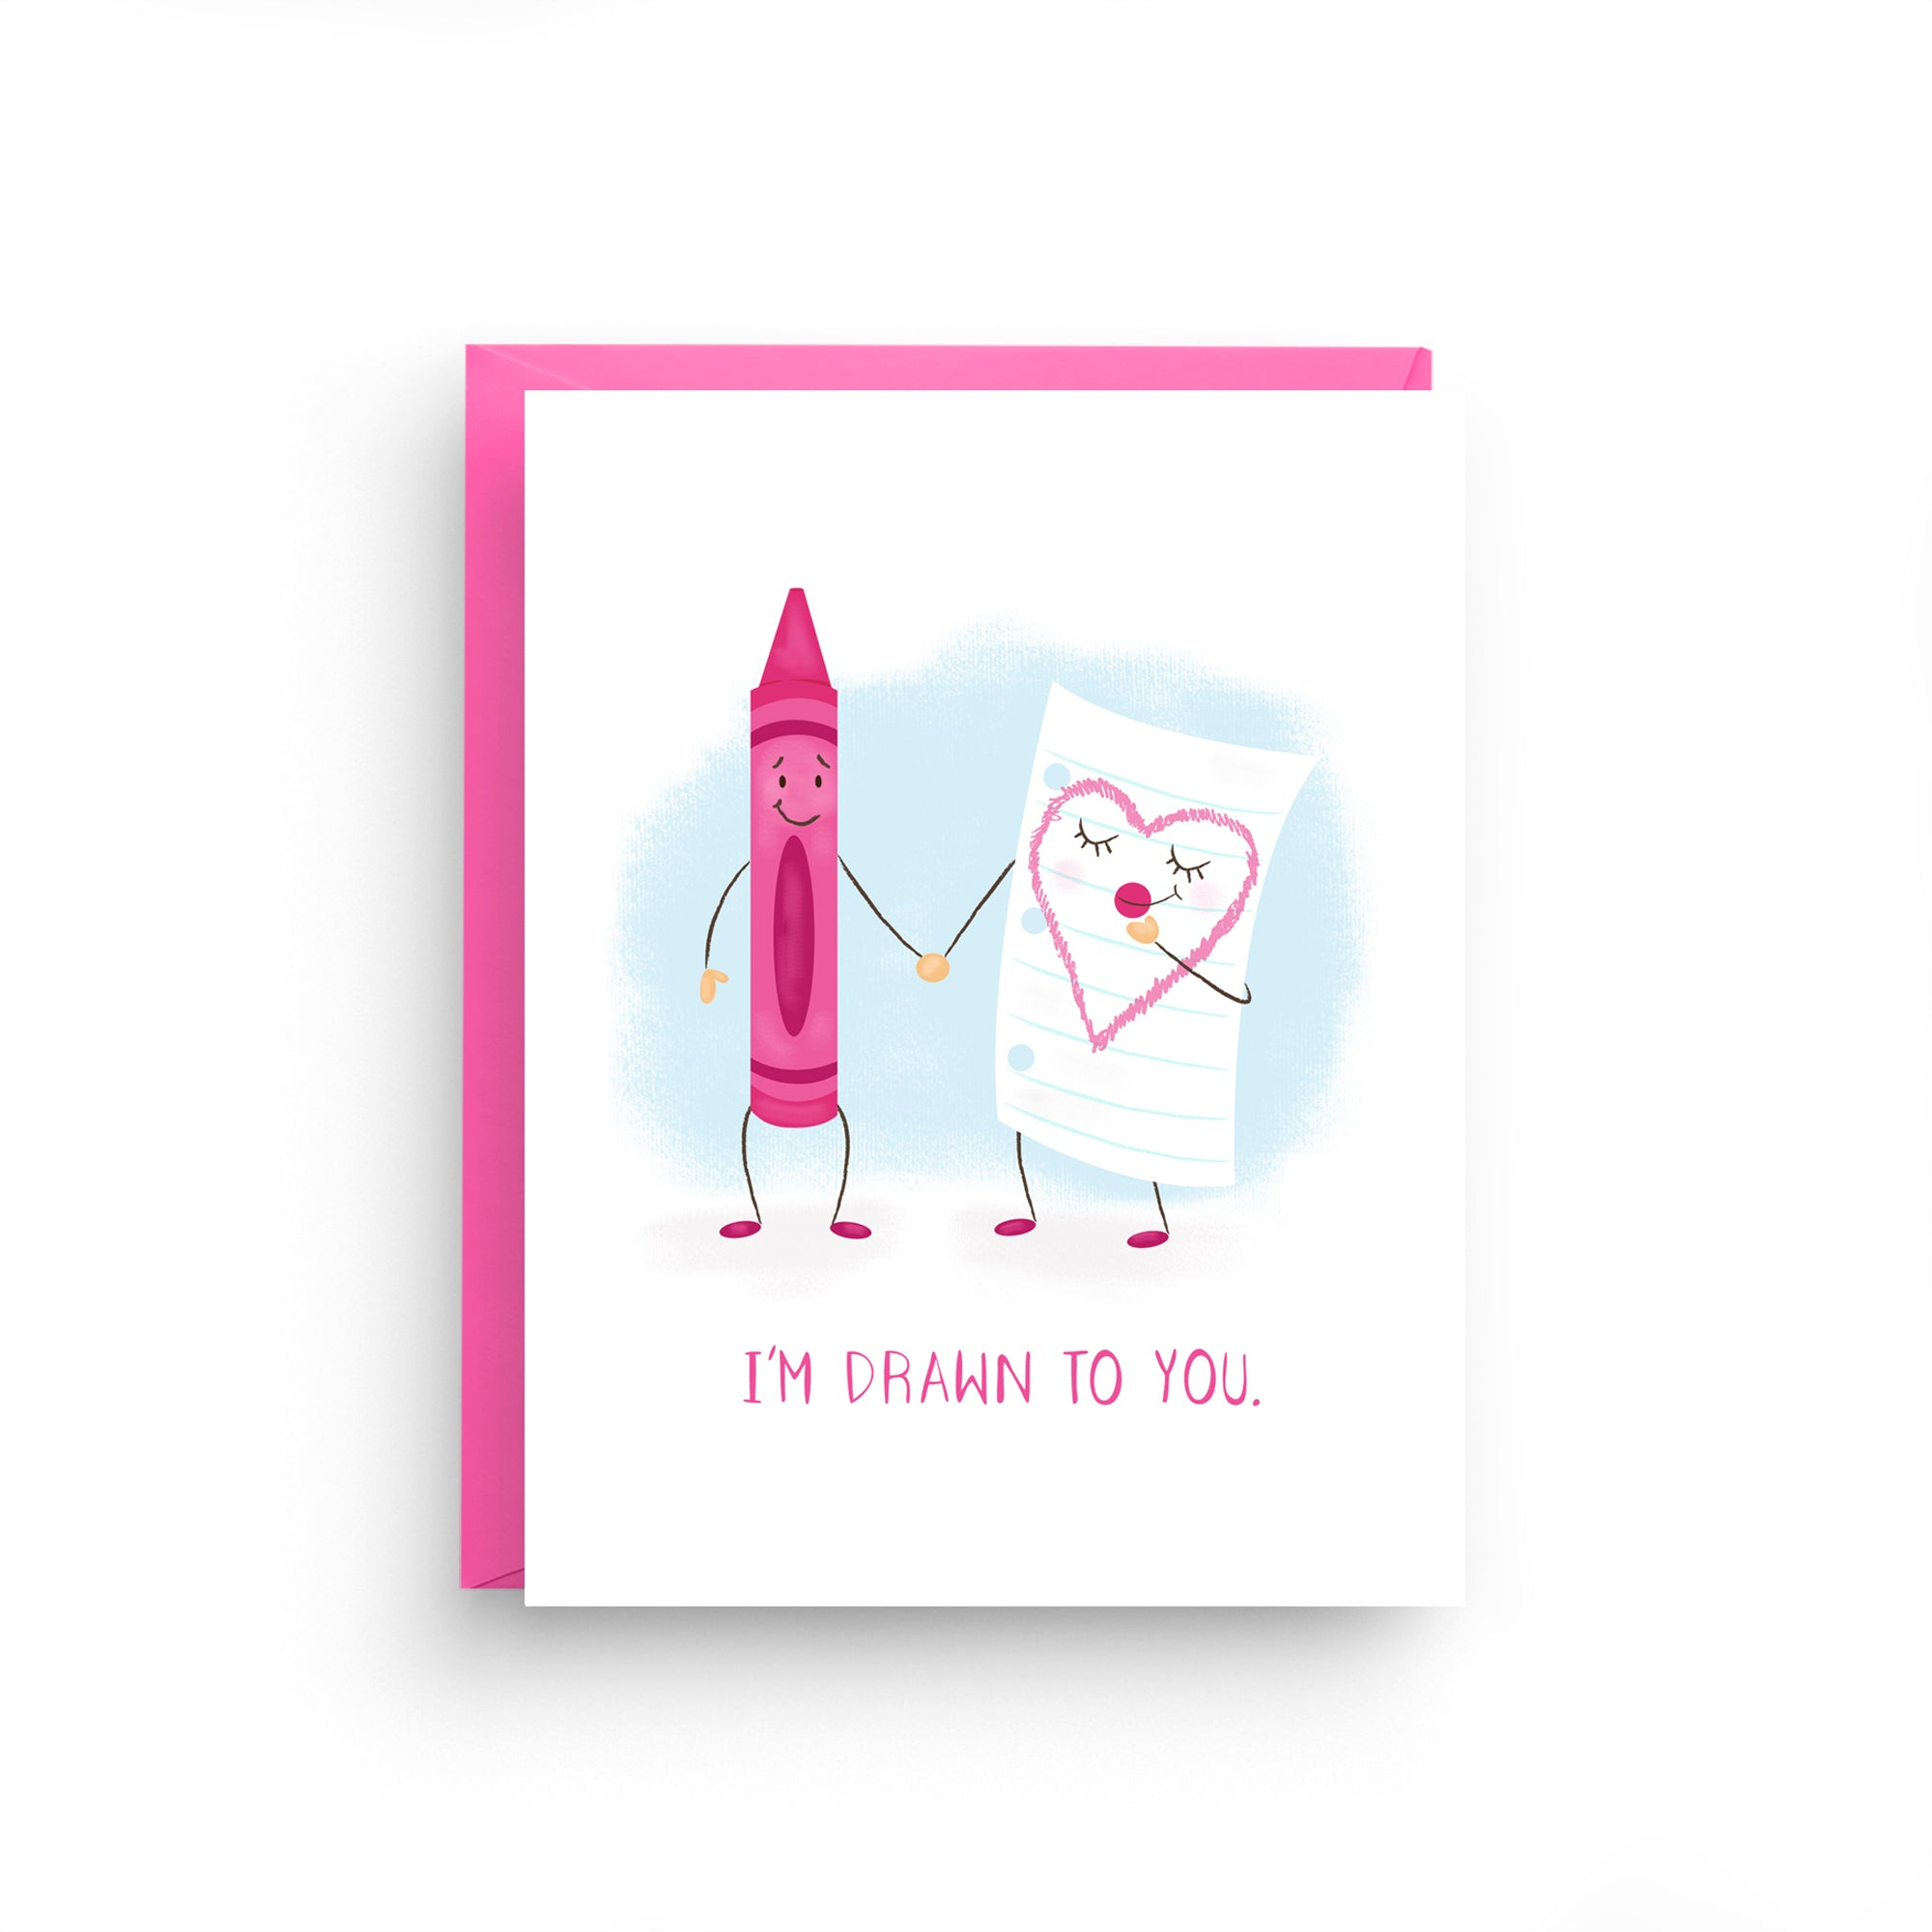 i'm drawn to you, i love you card, crayon card, cute card, cute i love you card, happy anniversary, girlfriend card, boyfriend card, anniversary card, i love you, card for wife, card for husband, love card